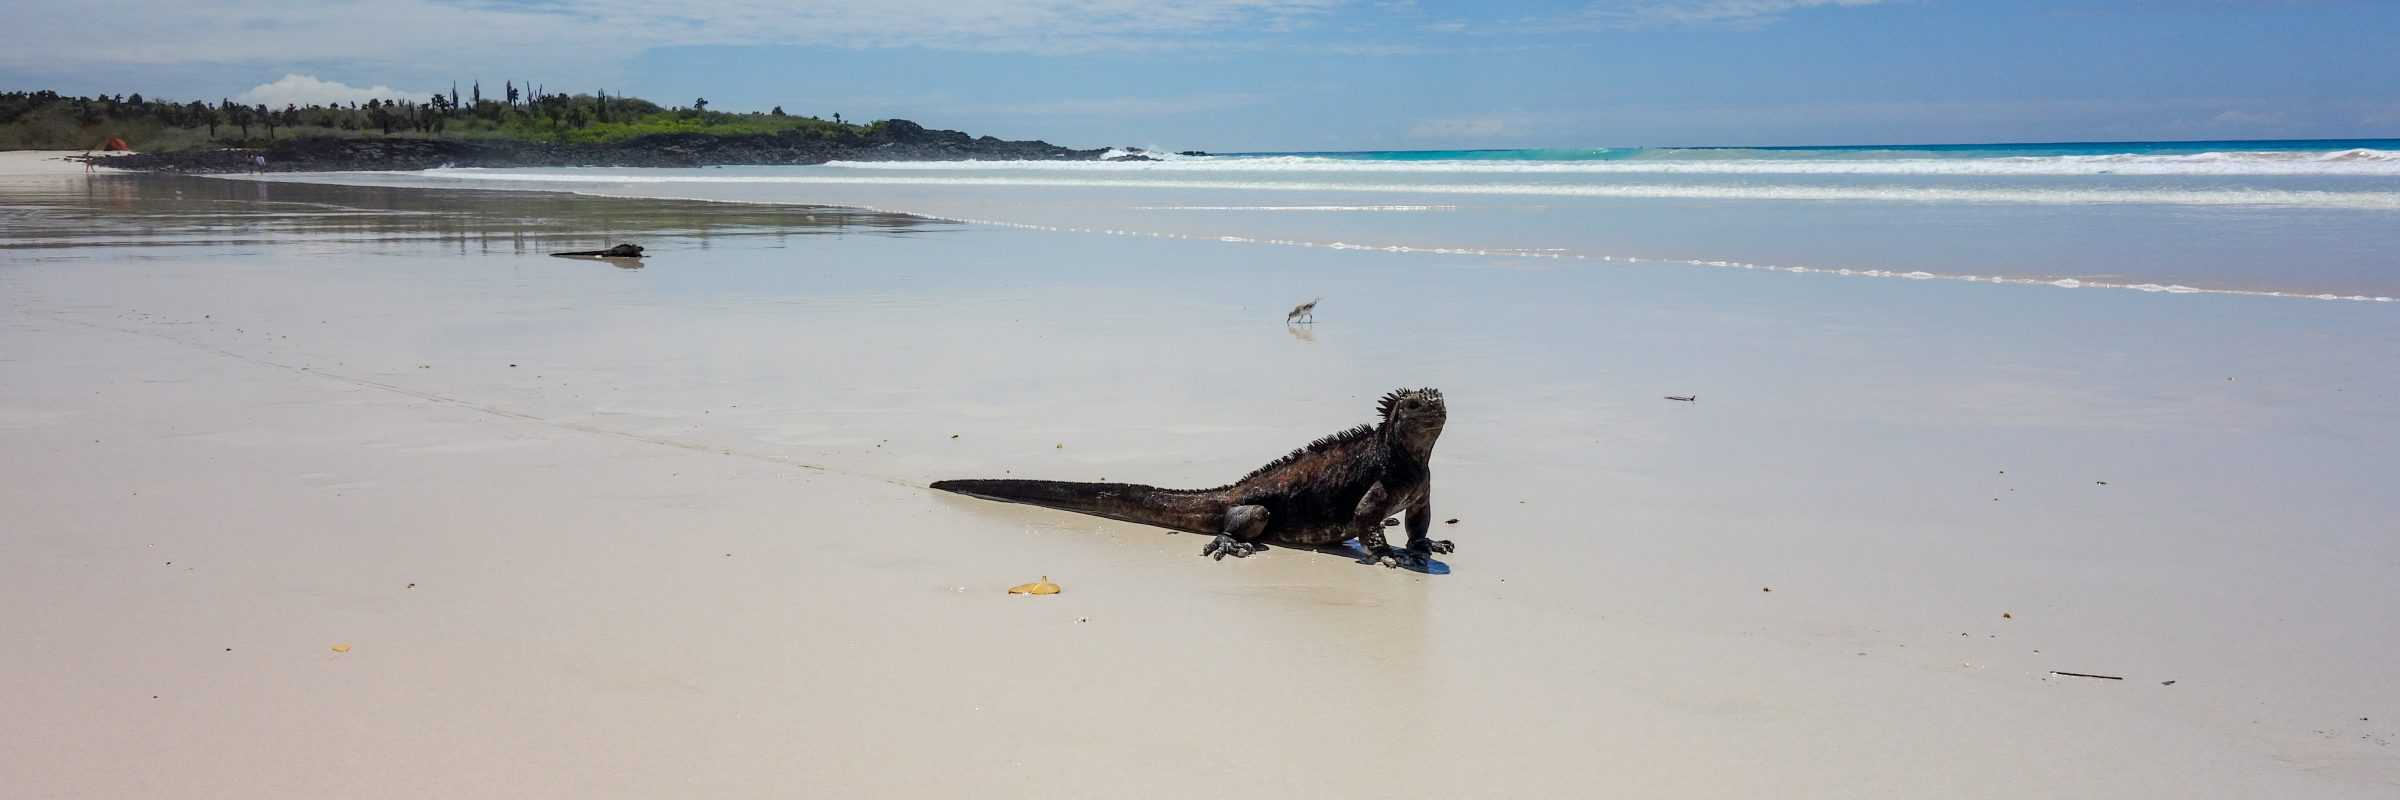 Marine iguana at Turtle Bay, Santa Cruz, Galapagos, Ecuador